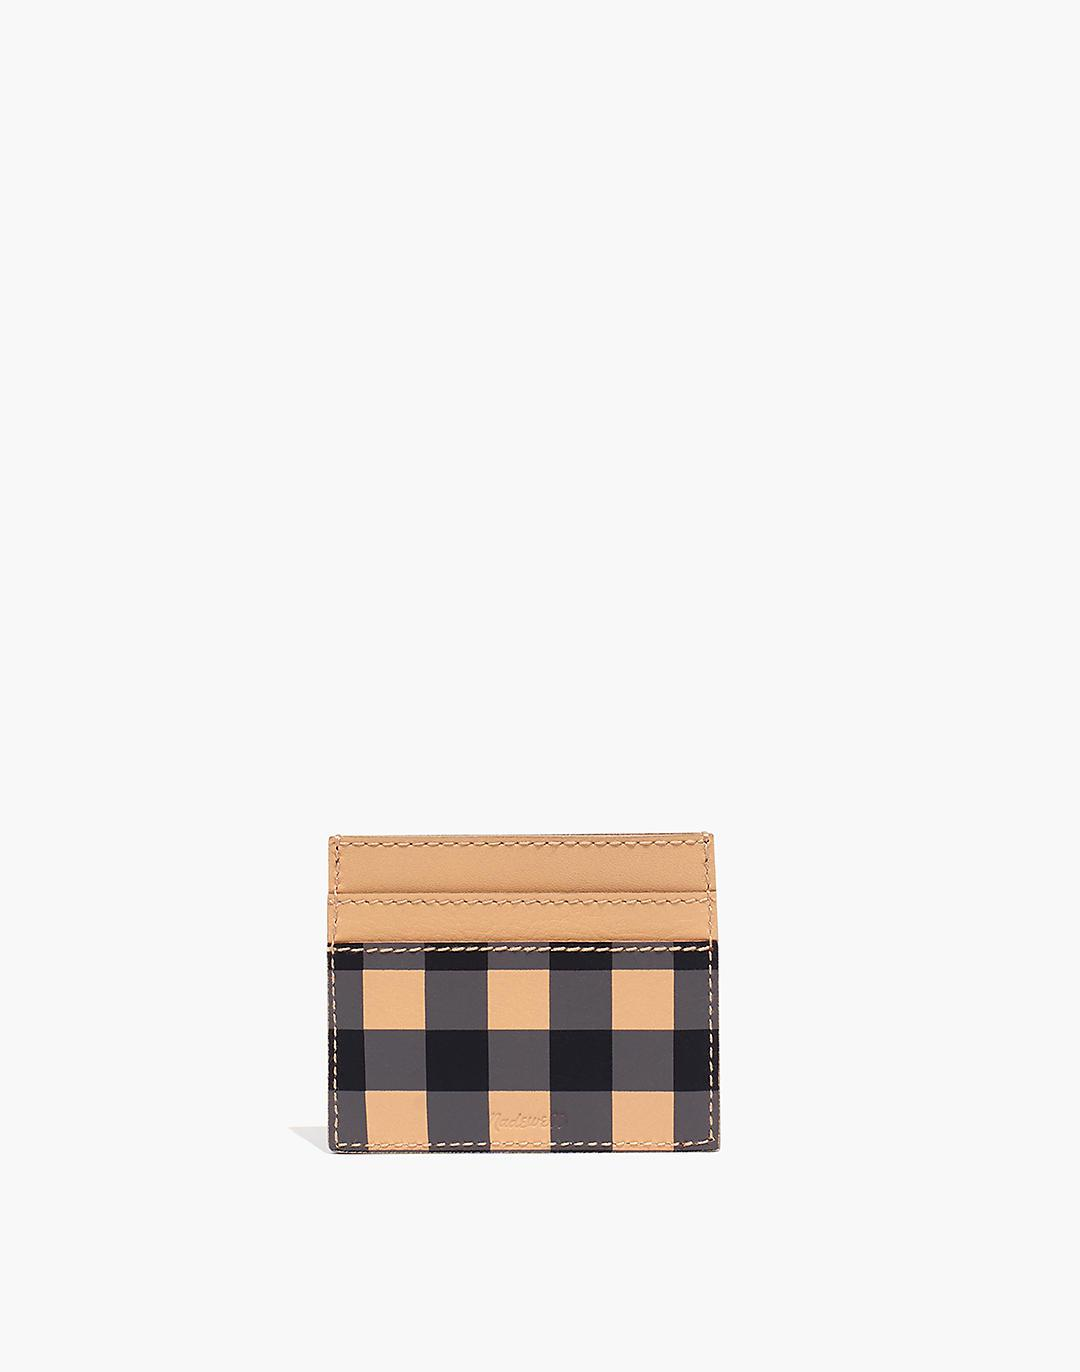 The Leather Card Case: Gingham Edition